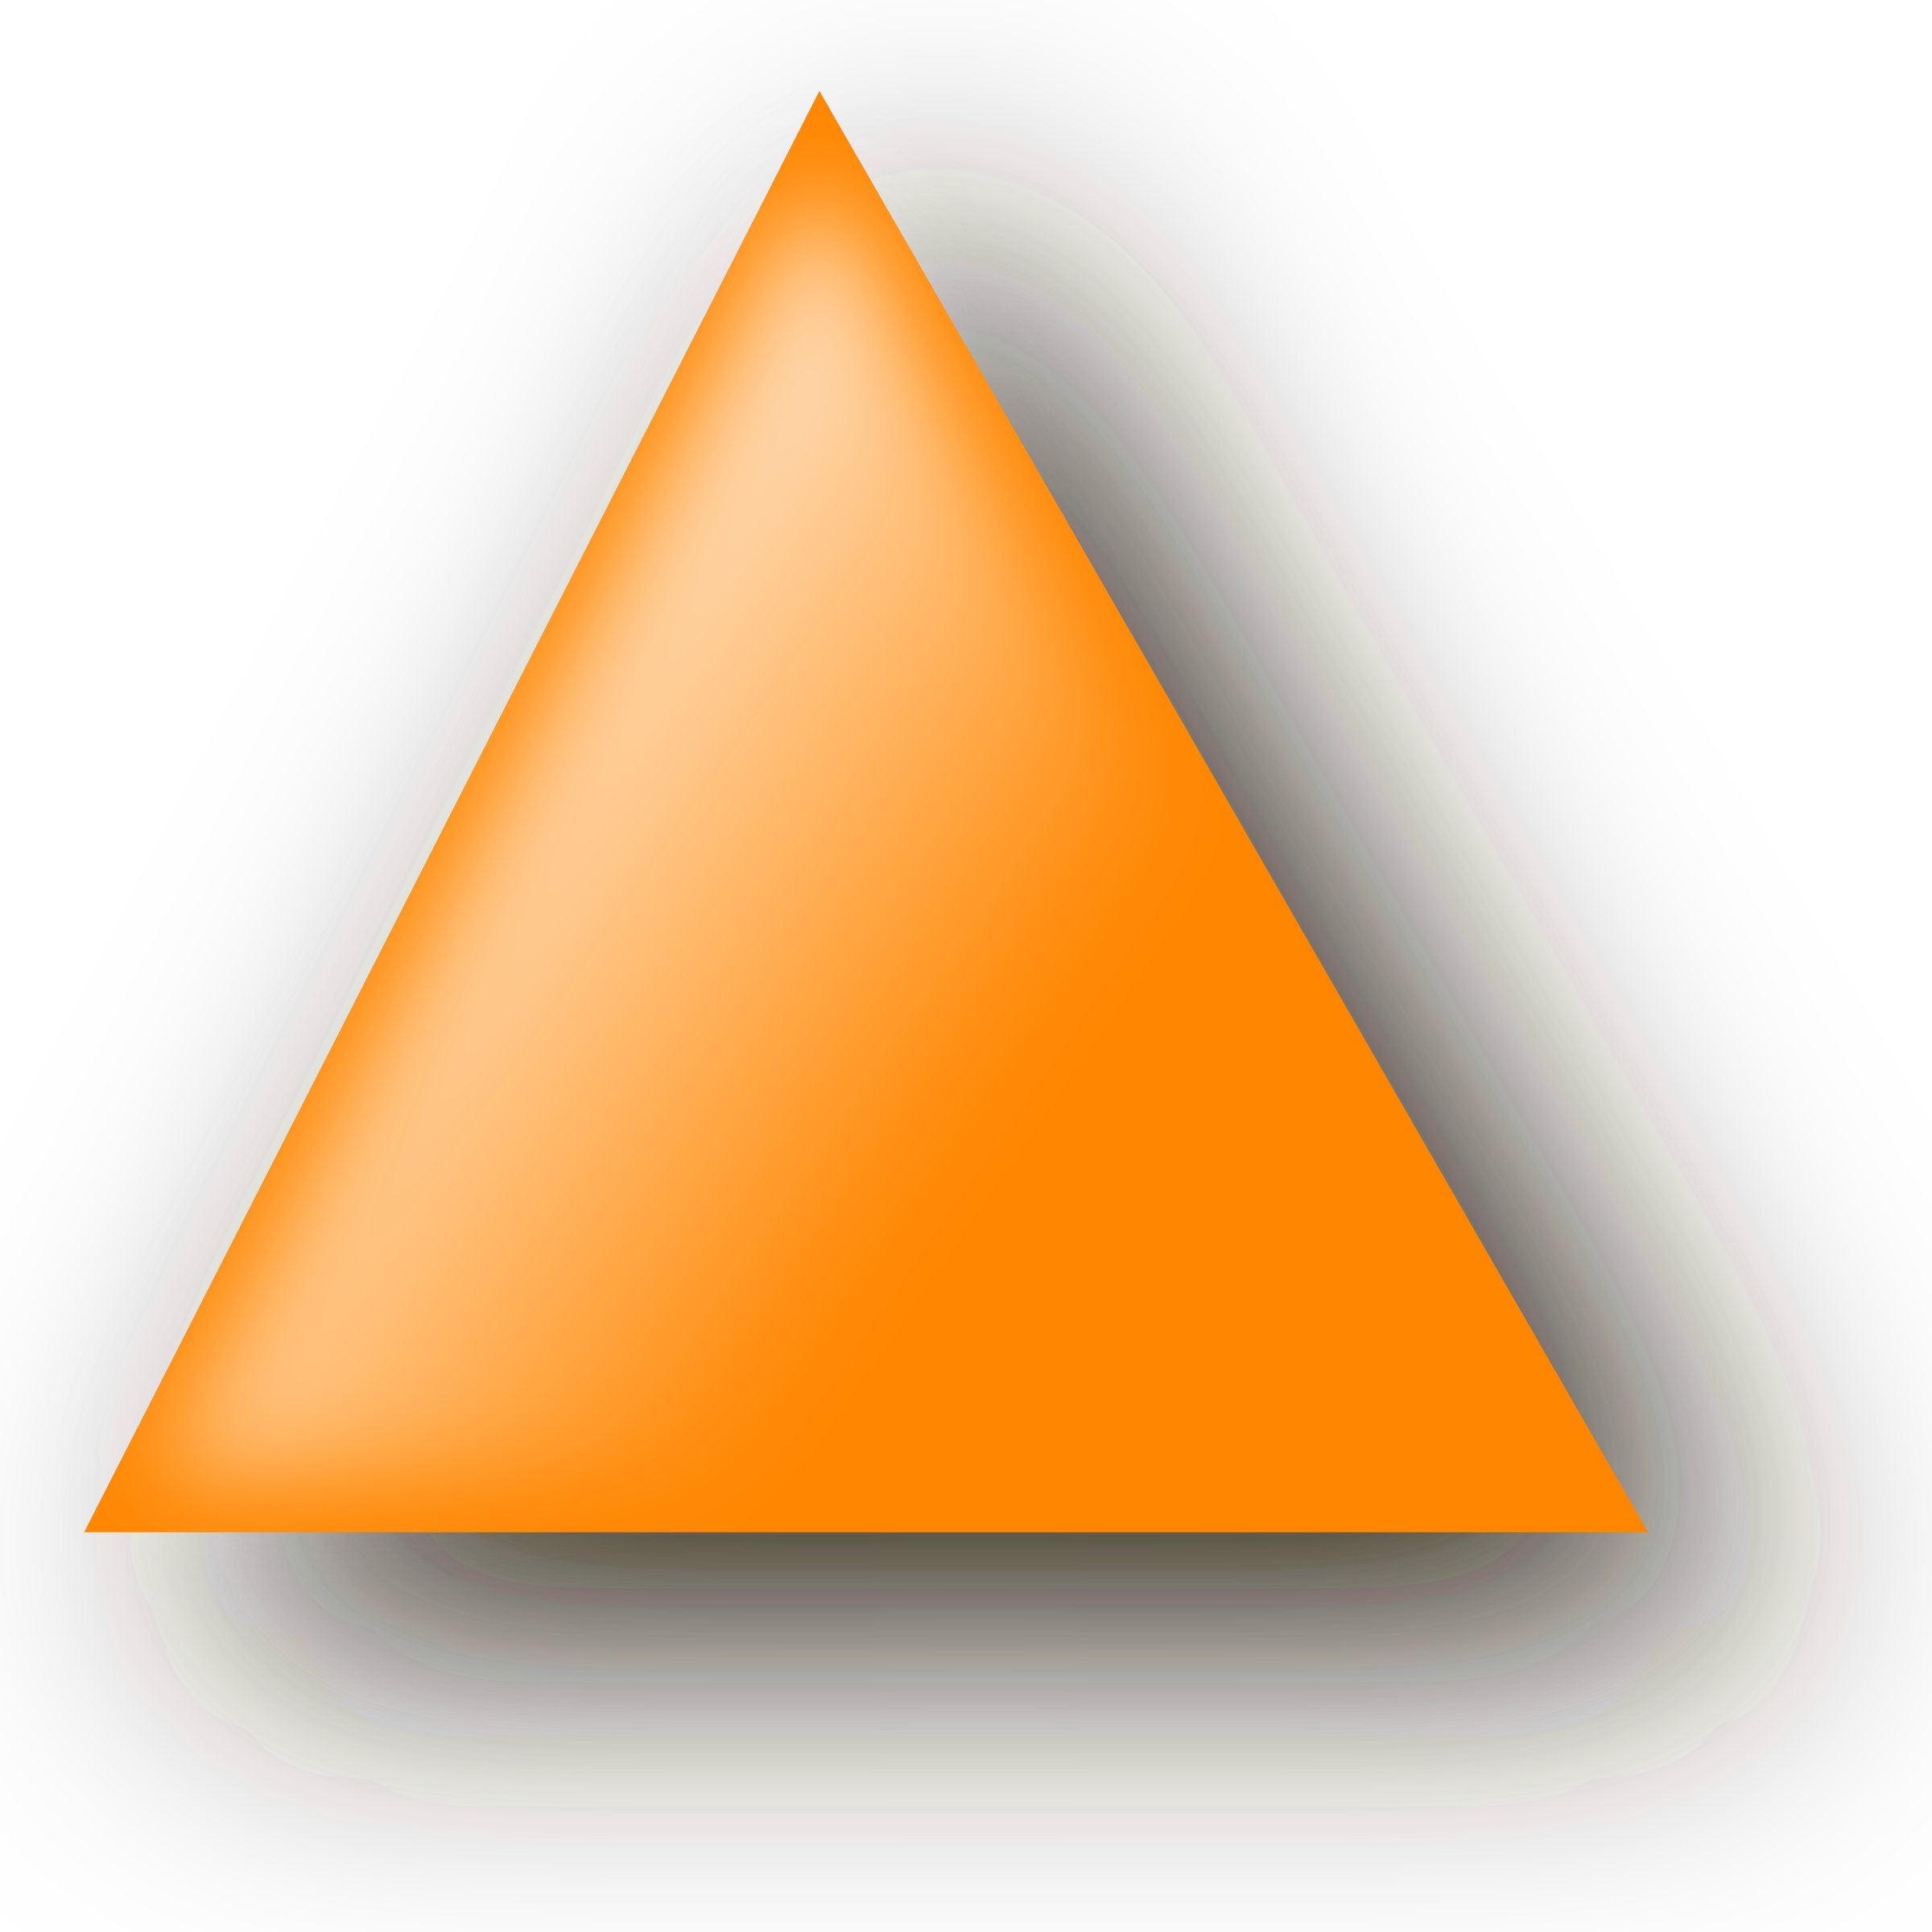 Orange big image png. Triangle clipart jpg library stock